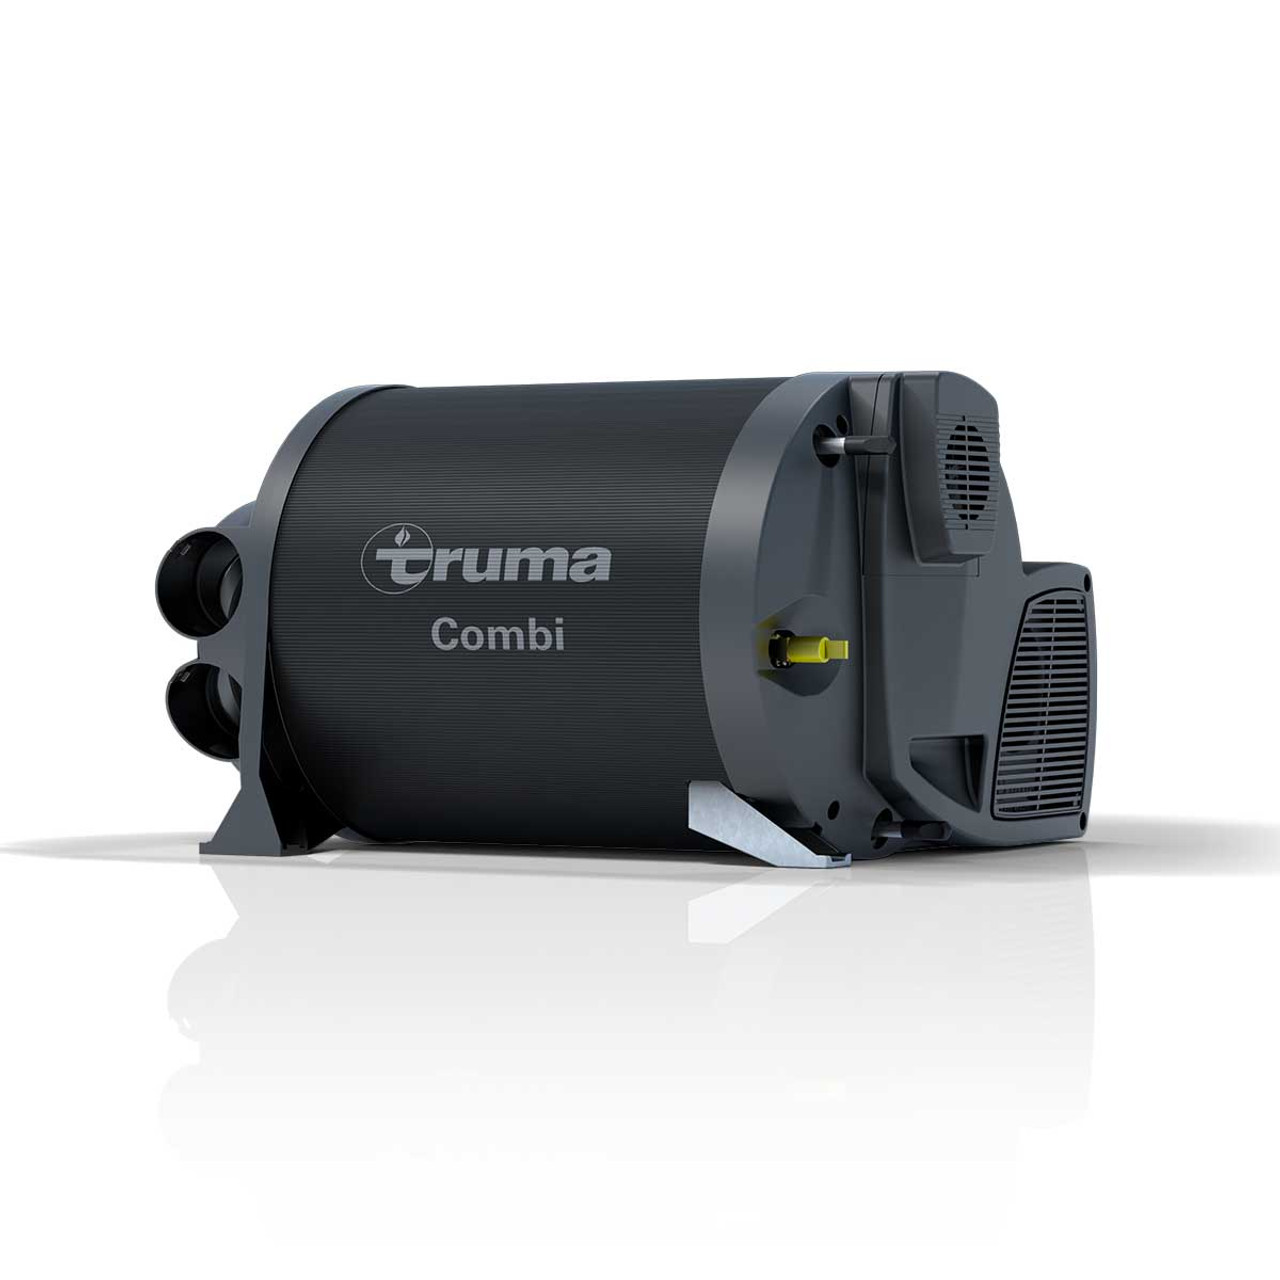 Image of the Truma Combi 2E, 4E and 6E caravan, motorhome, and campervan space heater and water boiler unit.